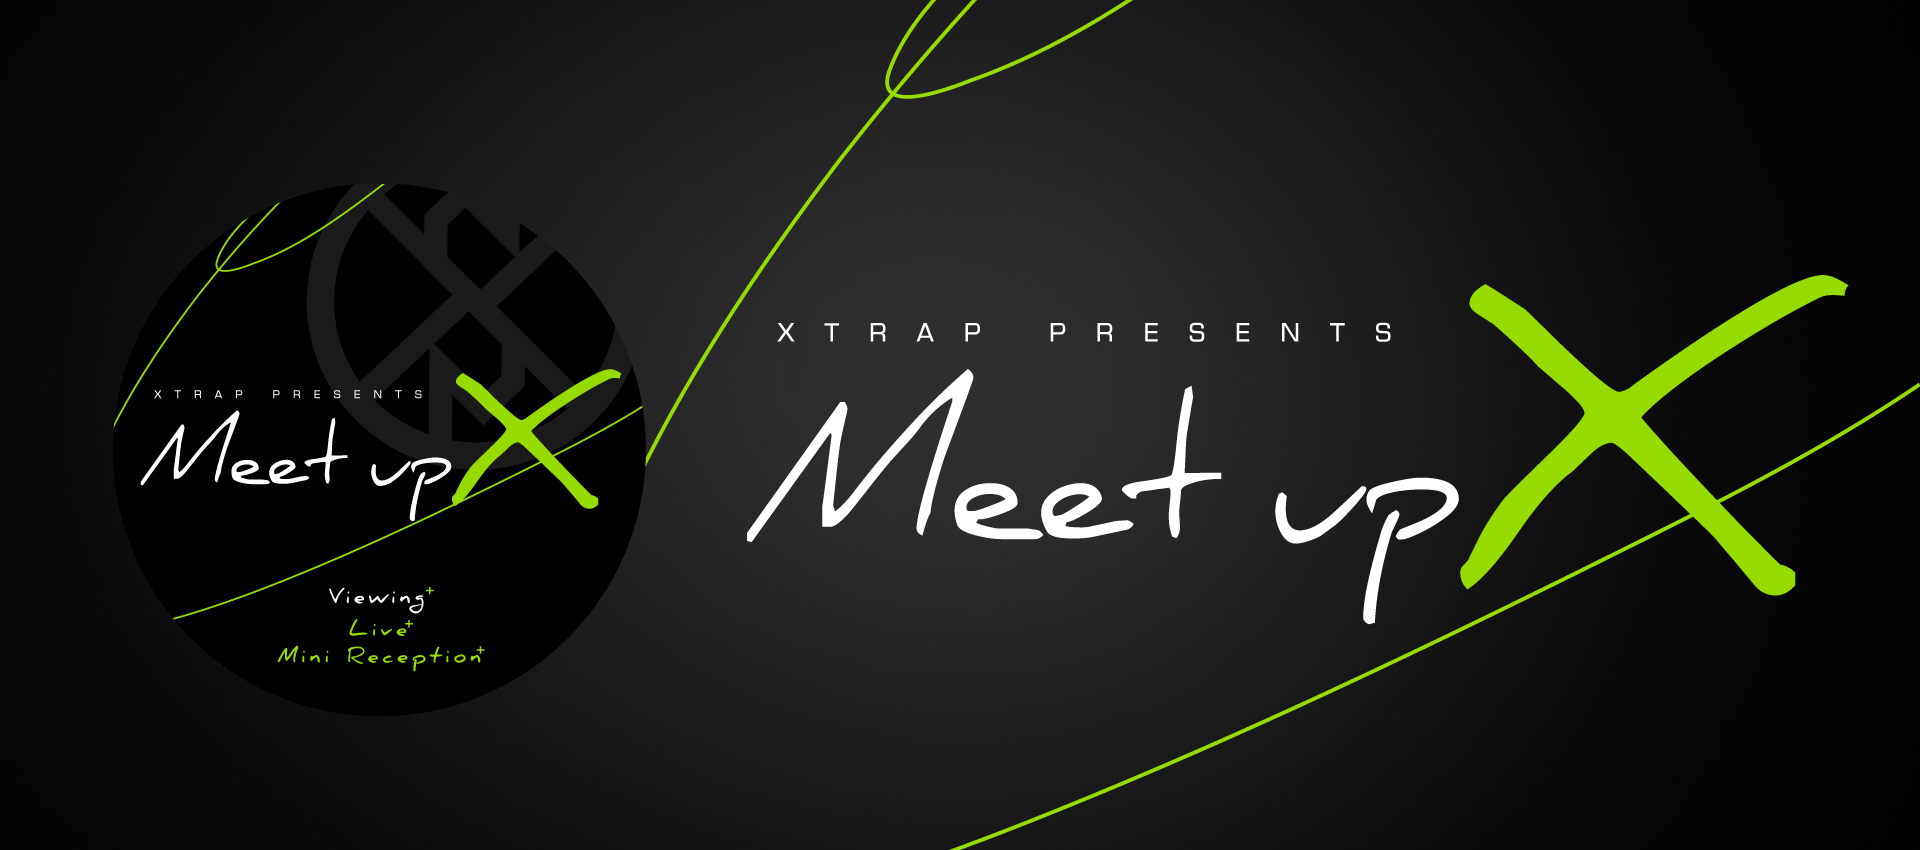 2016/6/21 XTRAP presents 「Meet up X」(終了)